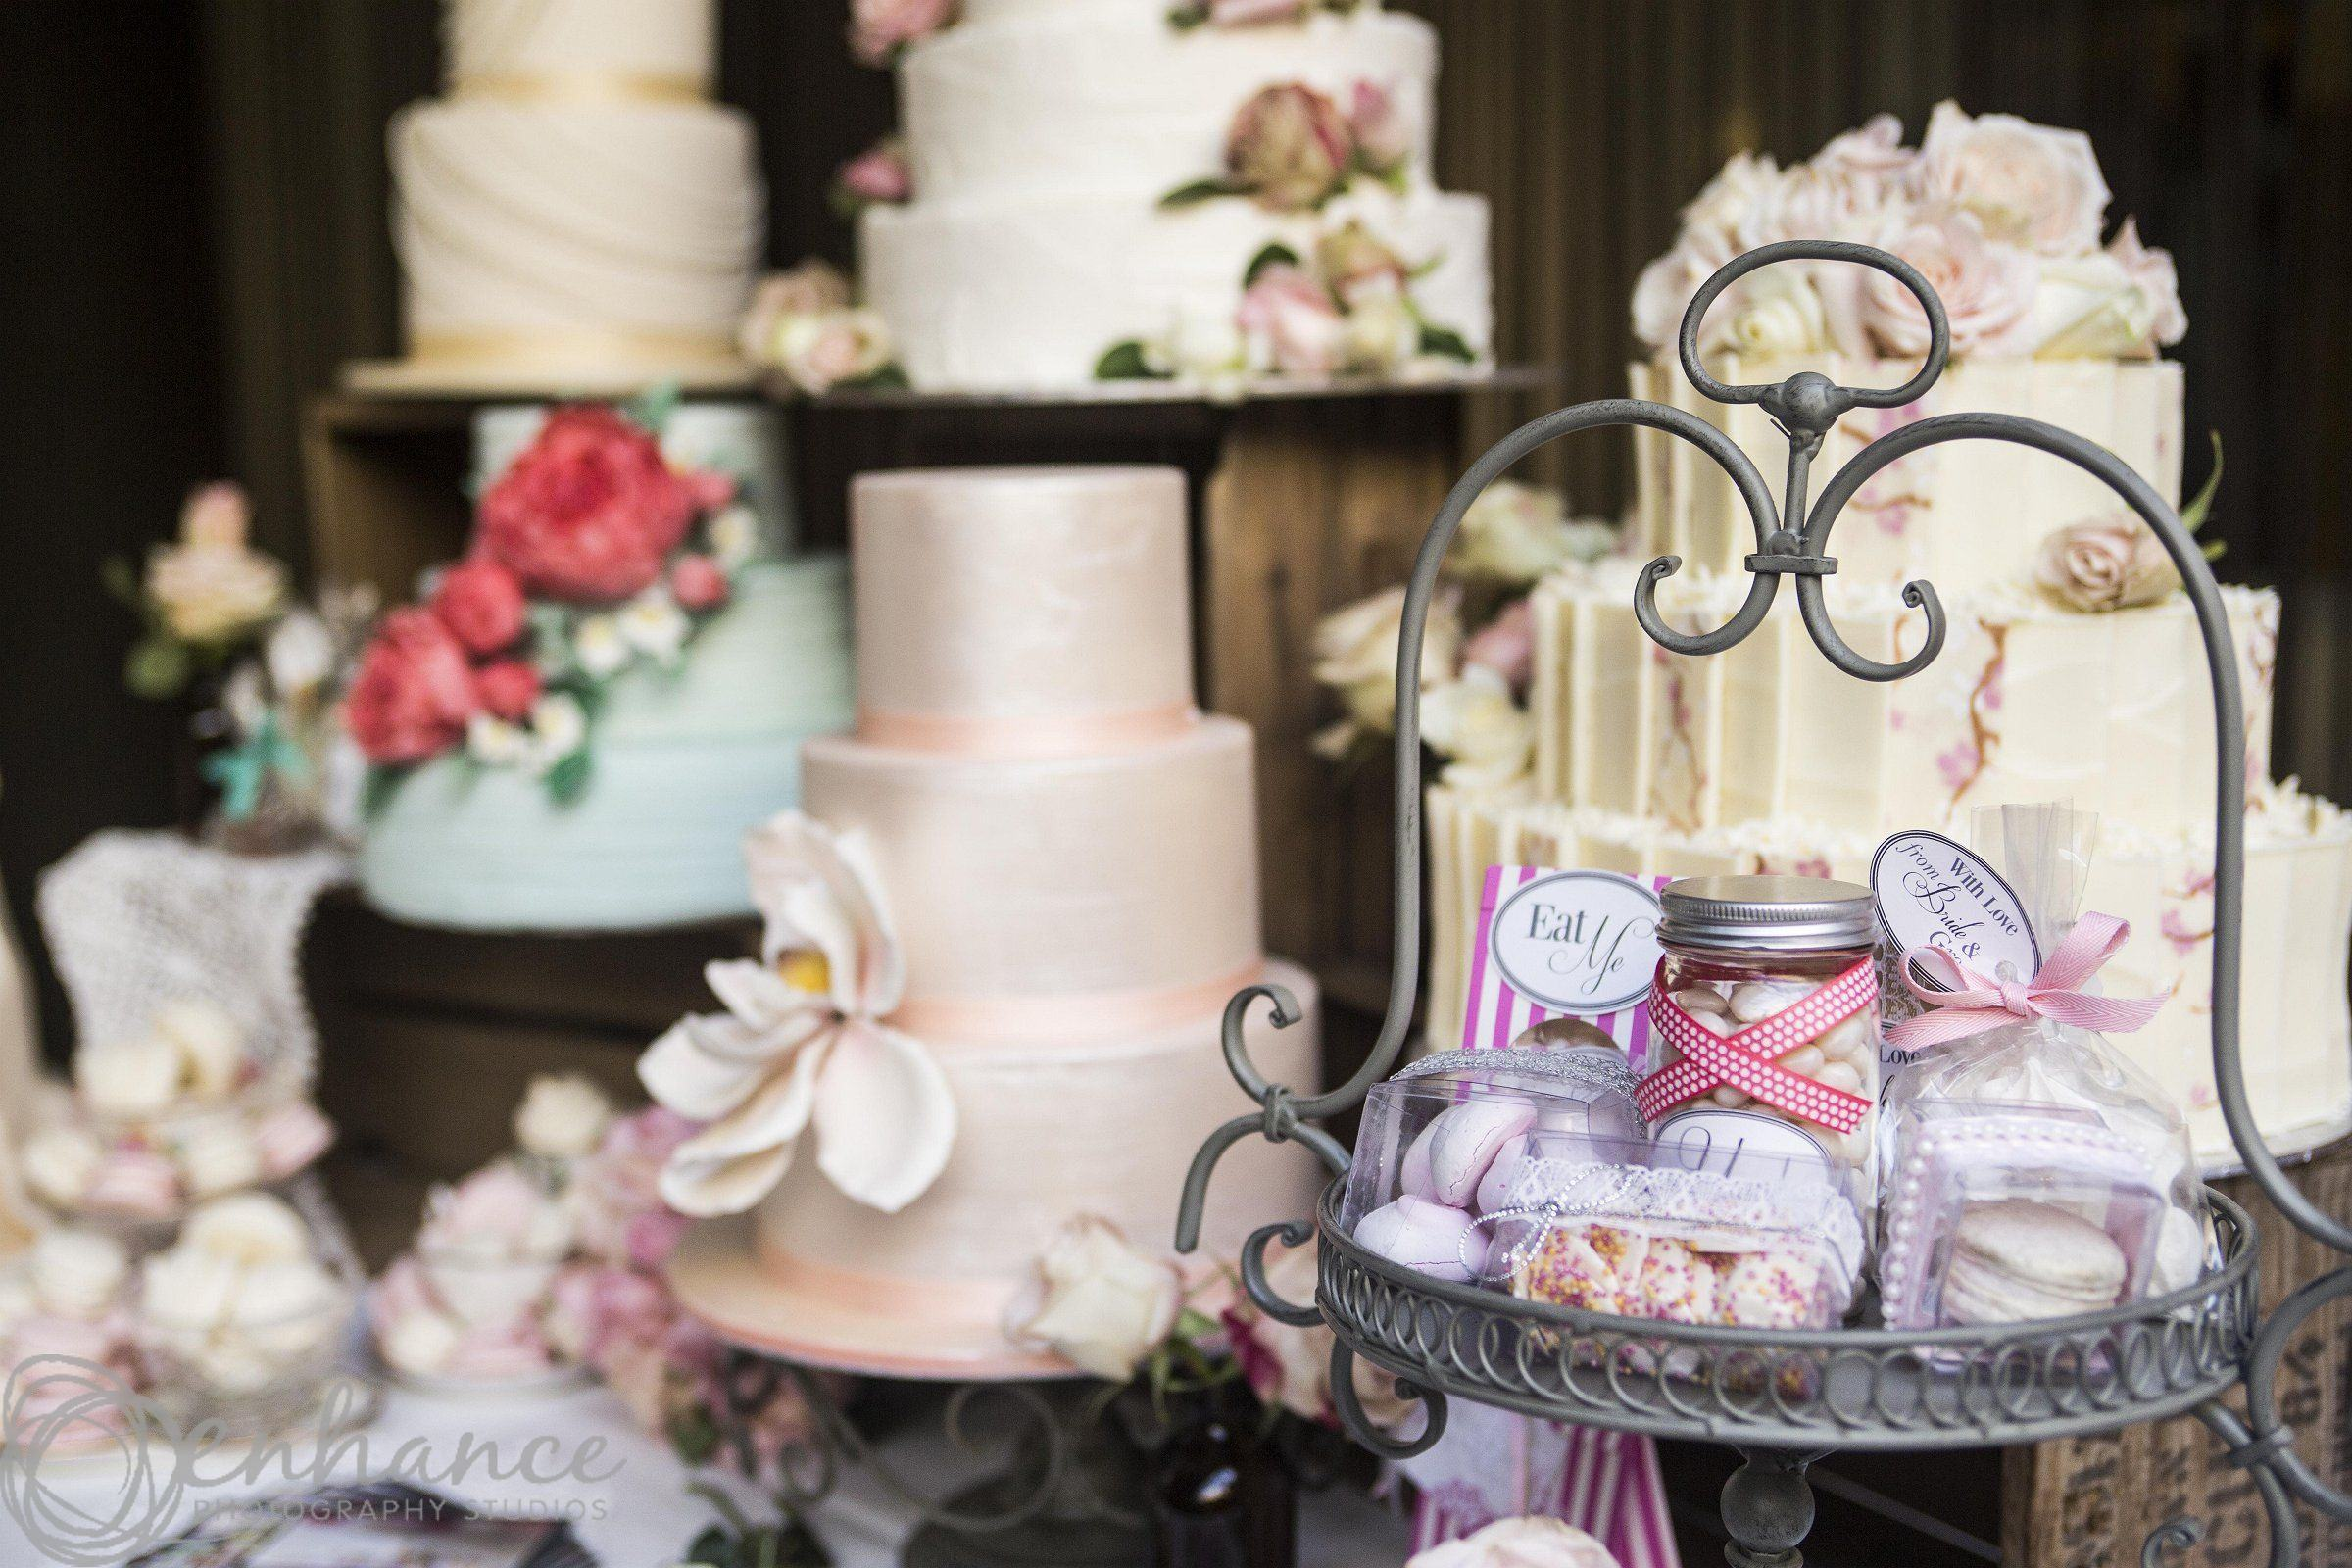 Photo of a wedding cake display, featuring wedding cakes in various colours and decorations